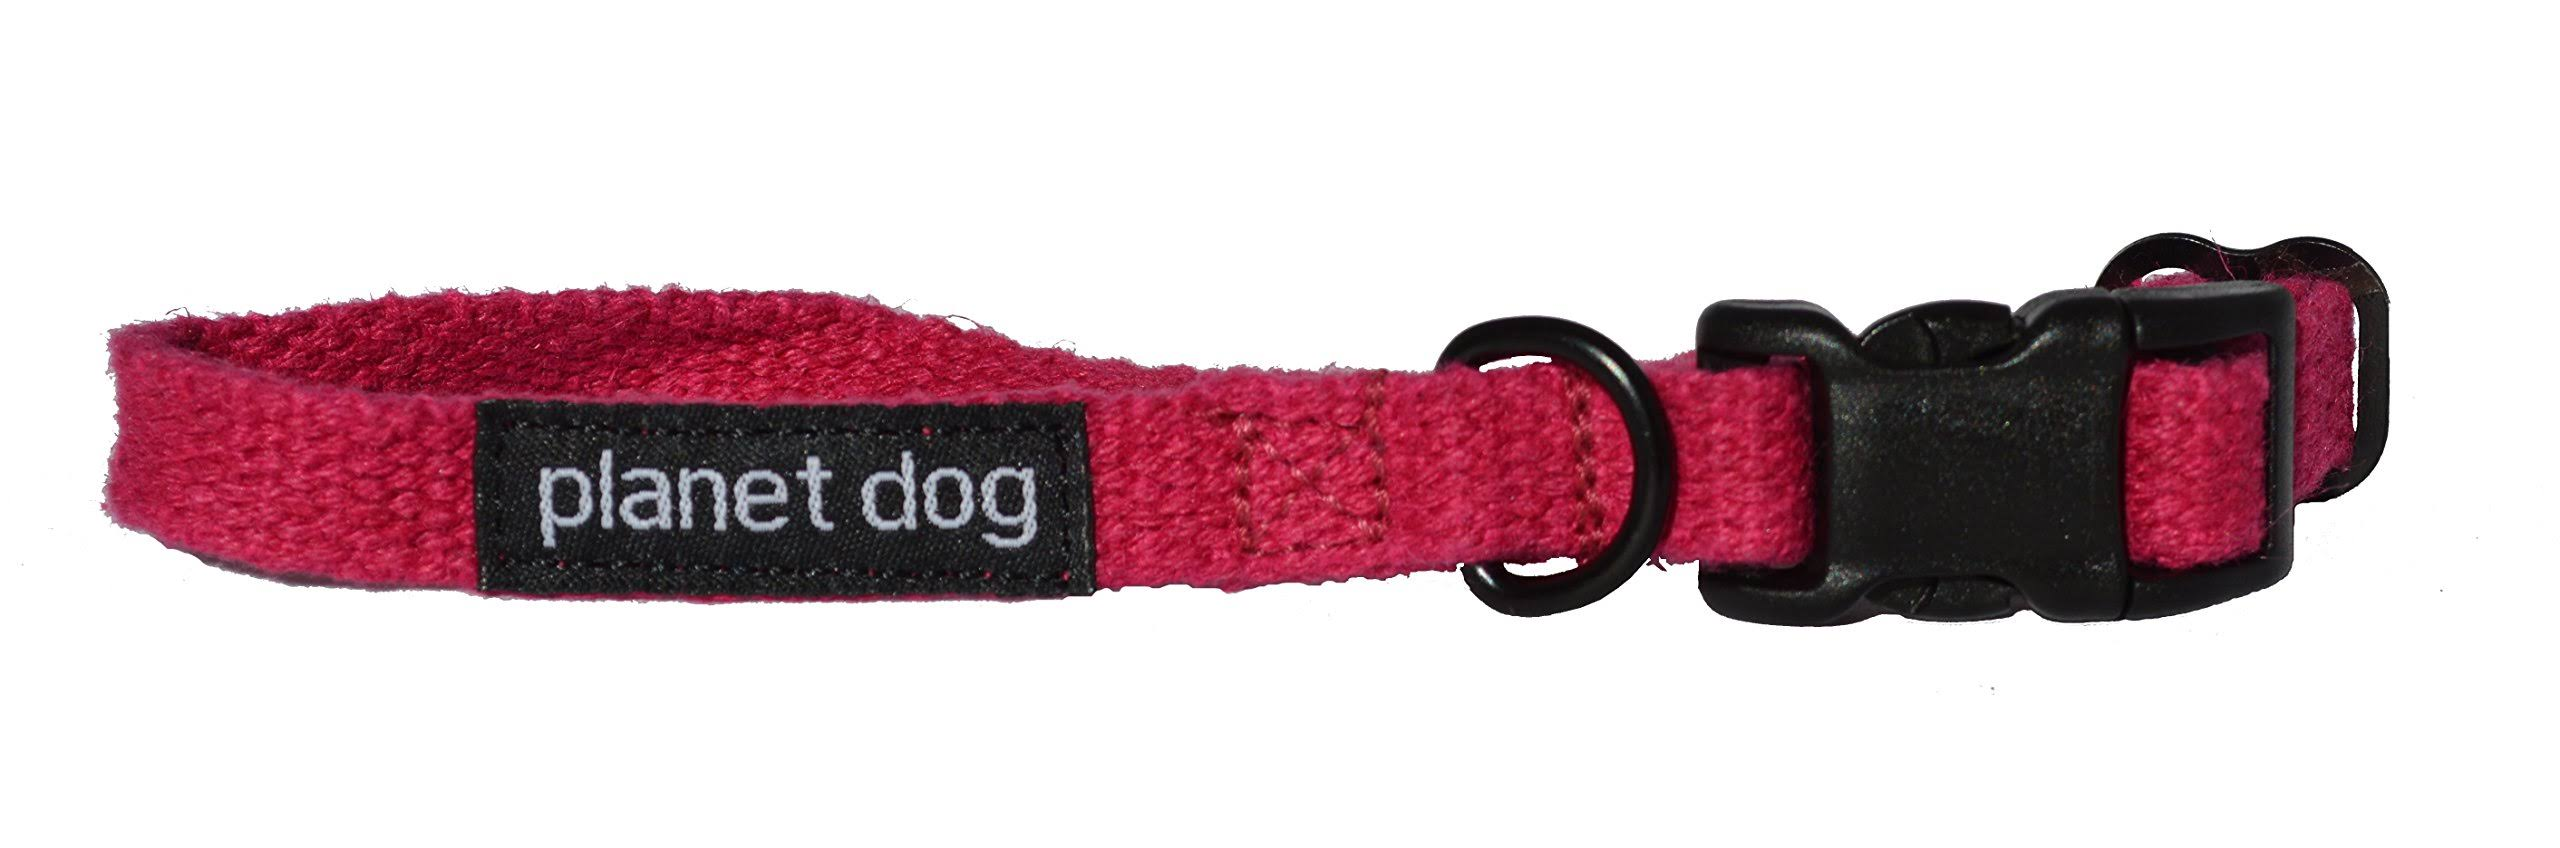 "Planet Dog Hemp Adjustable Collar - Pink, Small, 9"" to 13"""